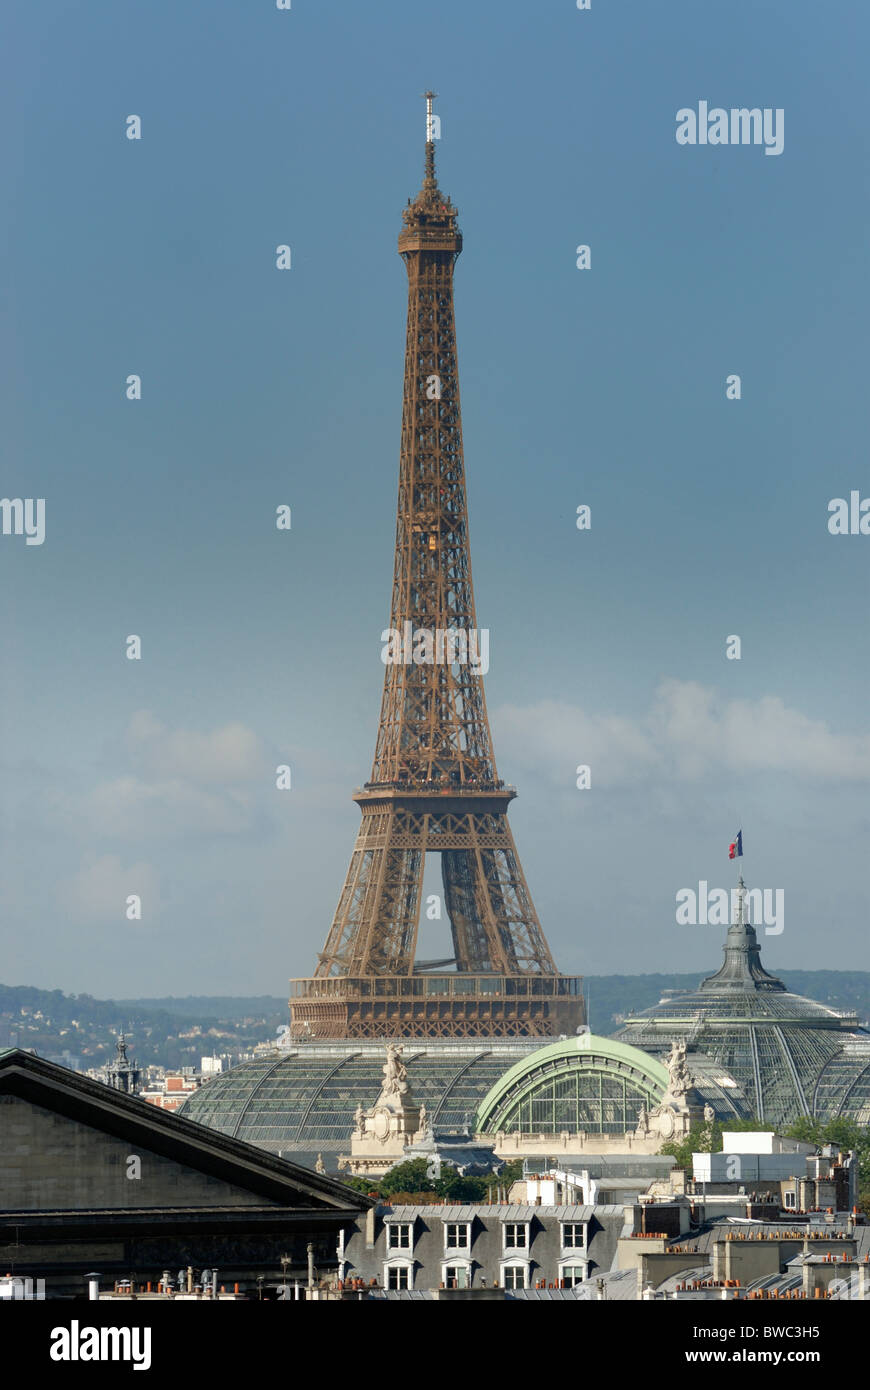 Famous world landmark Eiffel Tower as viewed from a rooftop in the 9th Arrondissement of Paris, France. - Stock Image